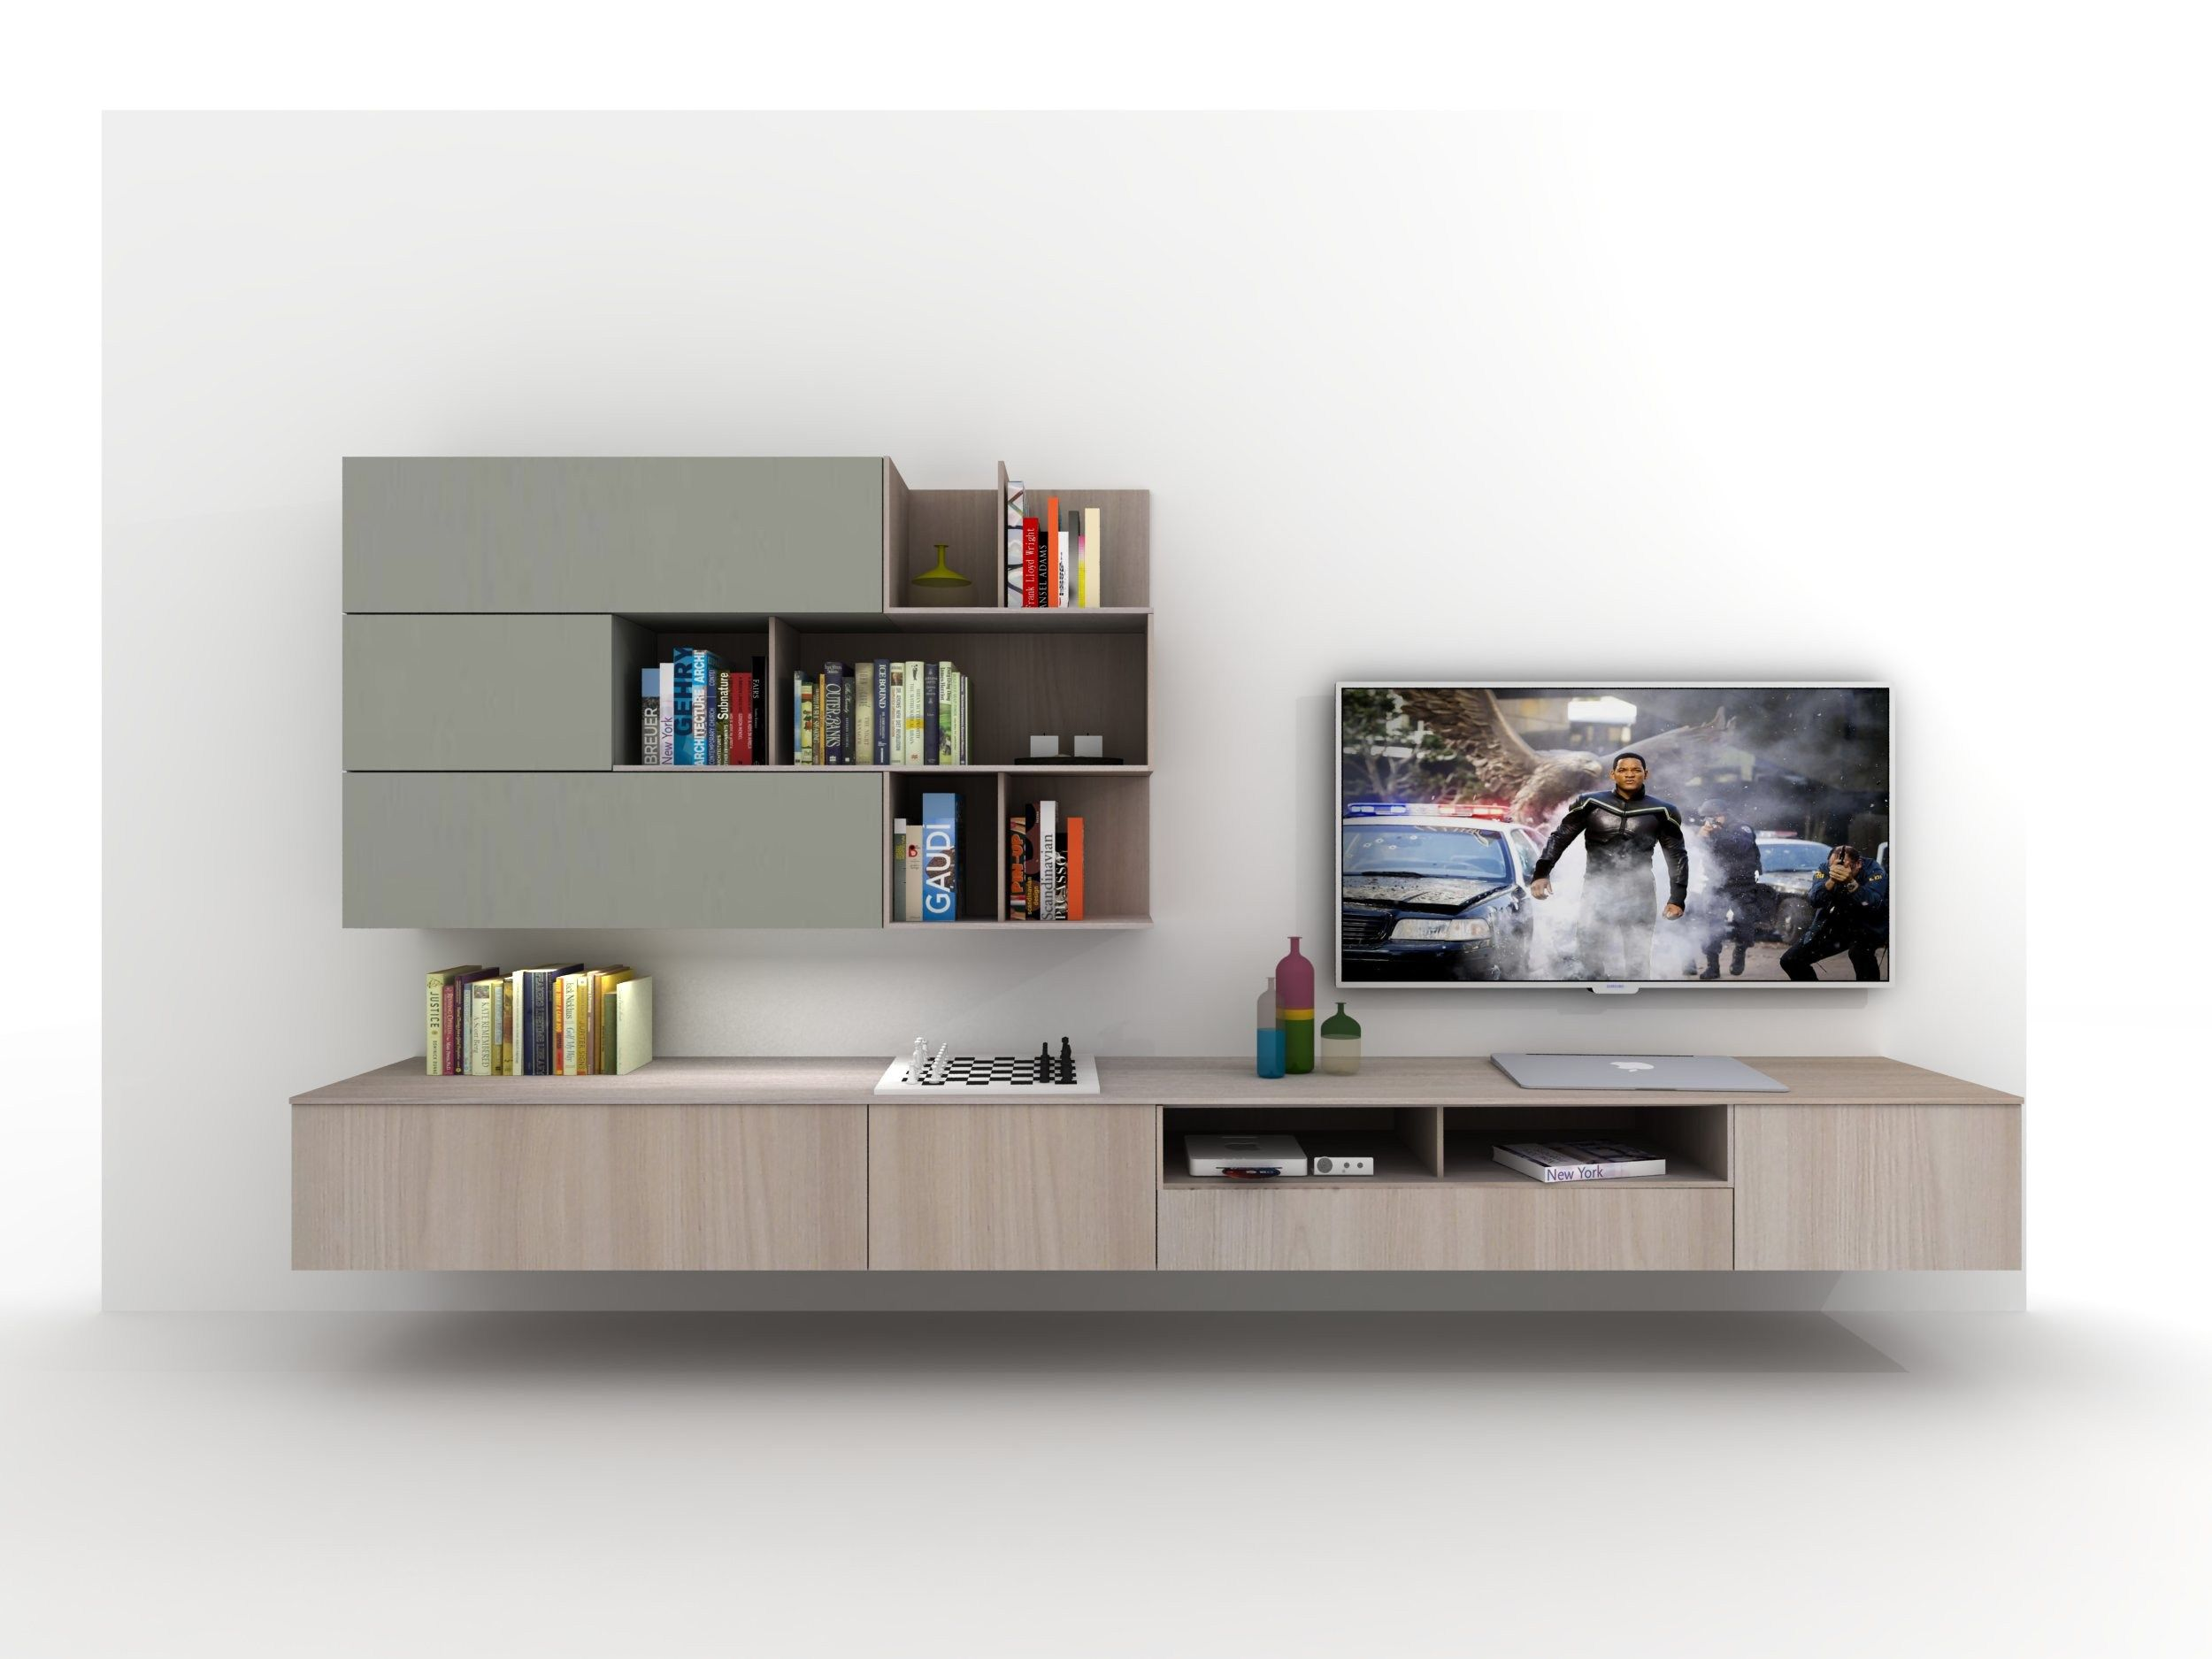 Mueble Modular De Pared Composable Montaje Pared Z409 By Zalf  # Fabrica De Muebles Hedi